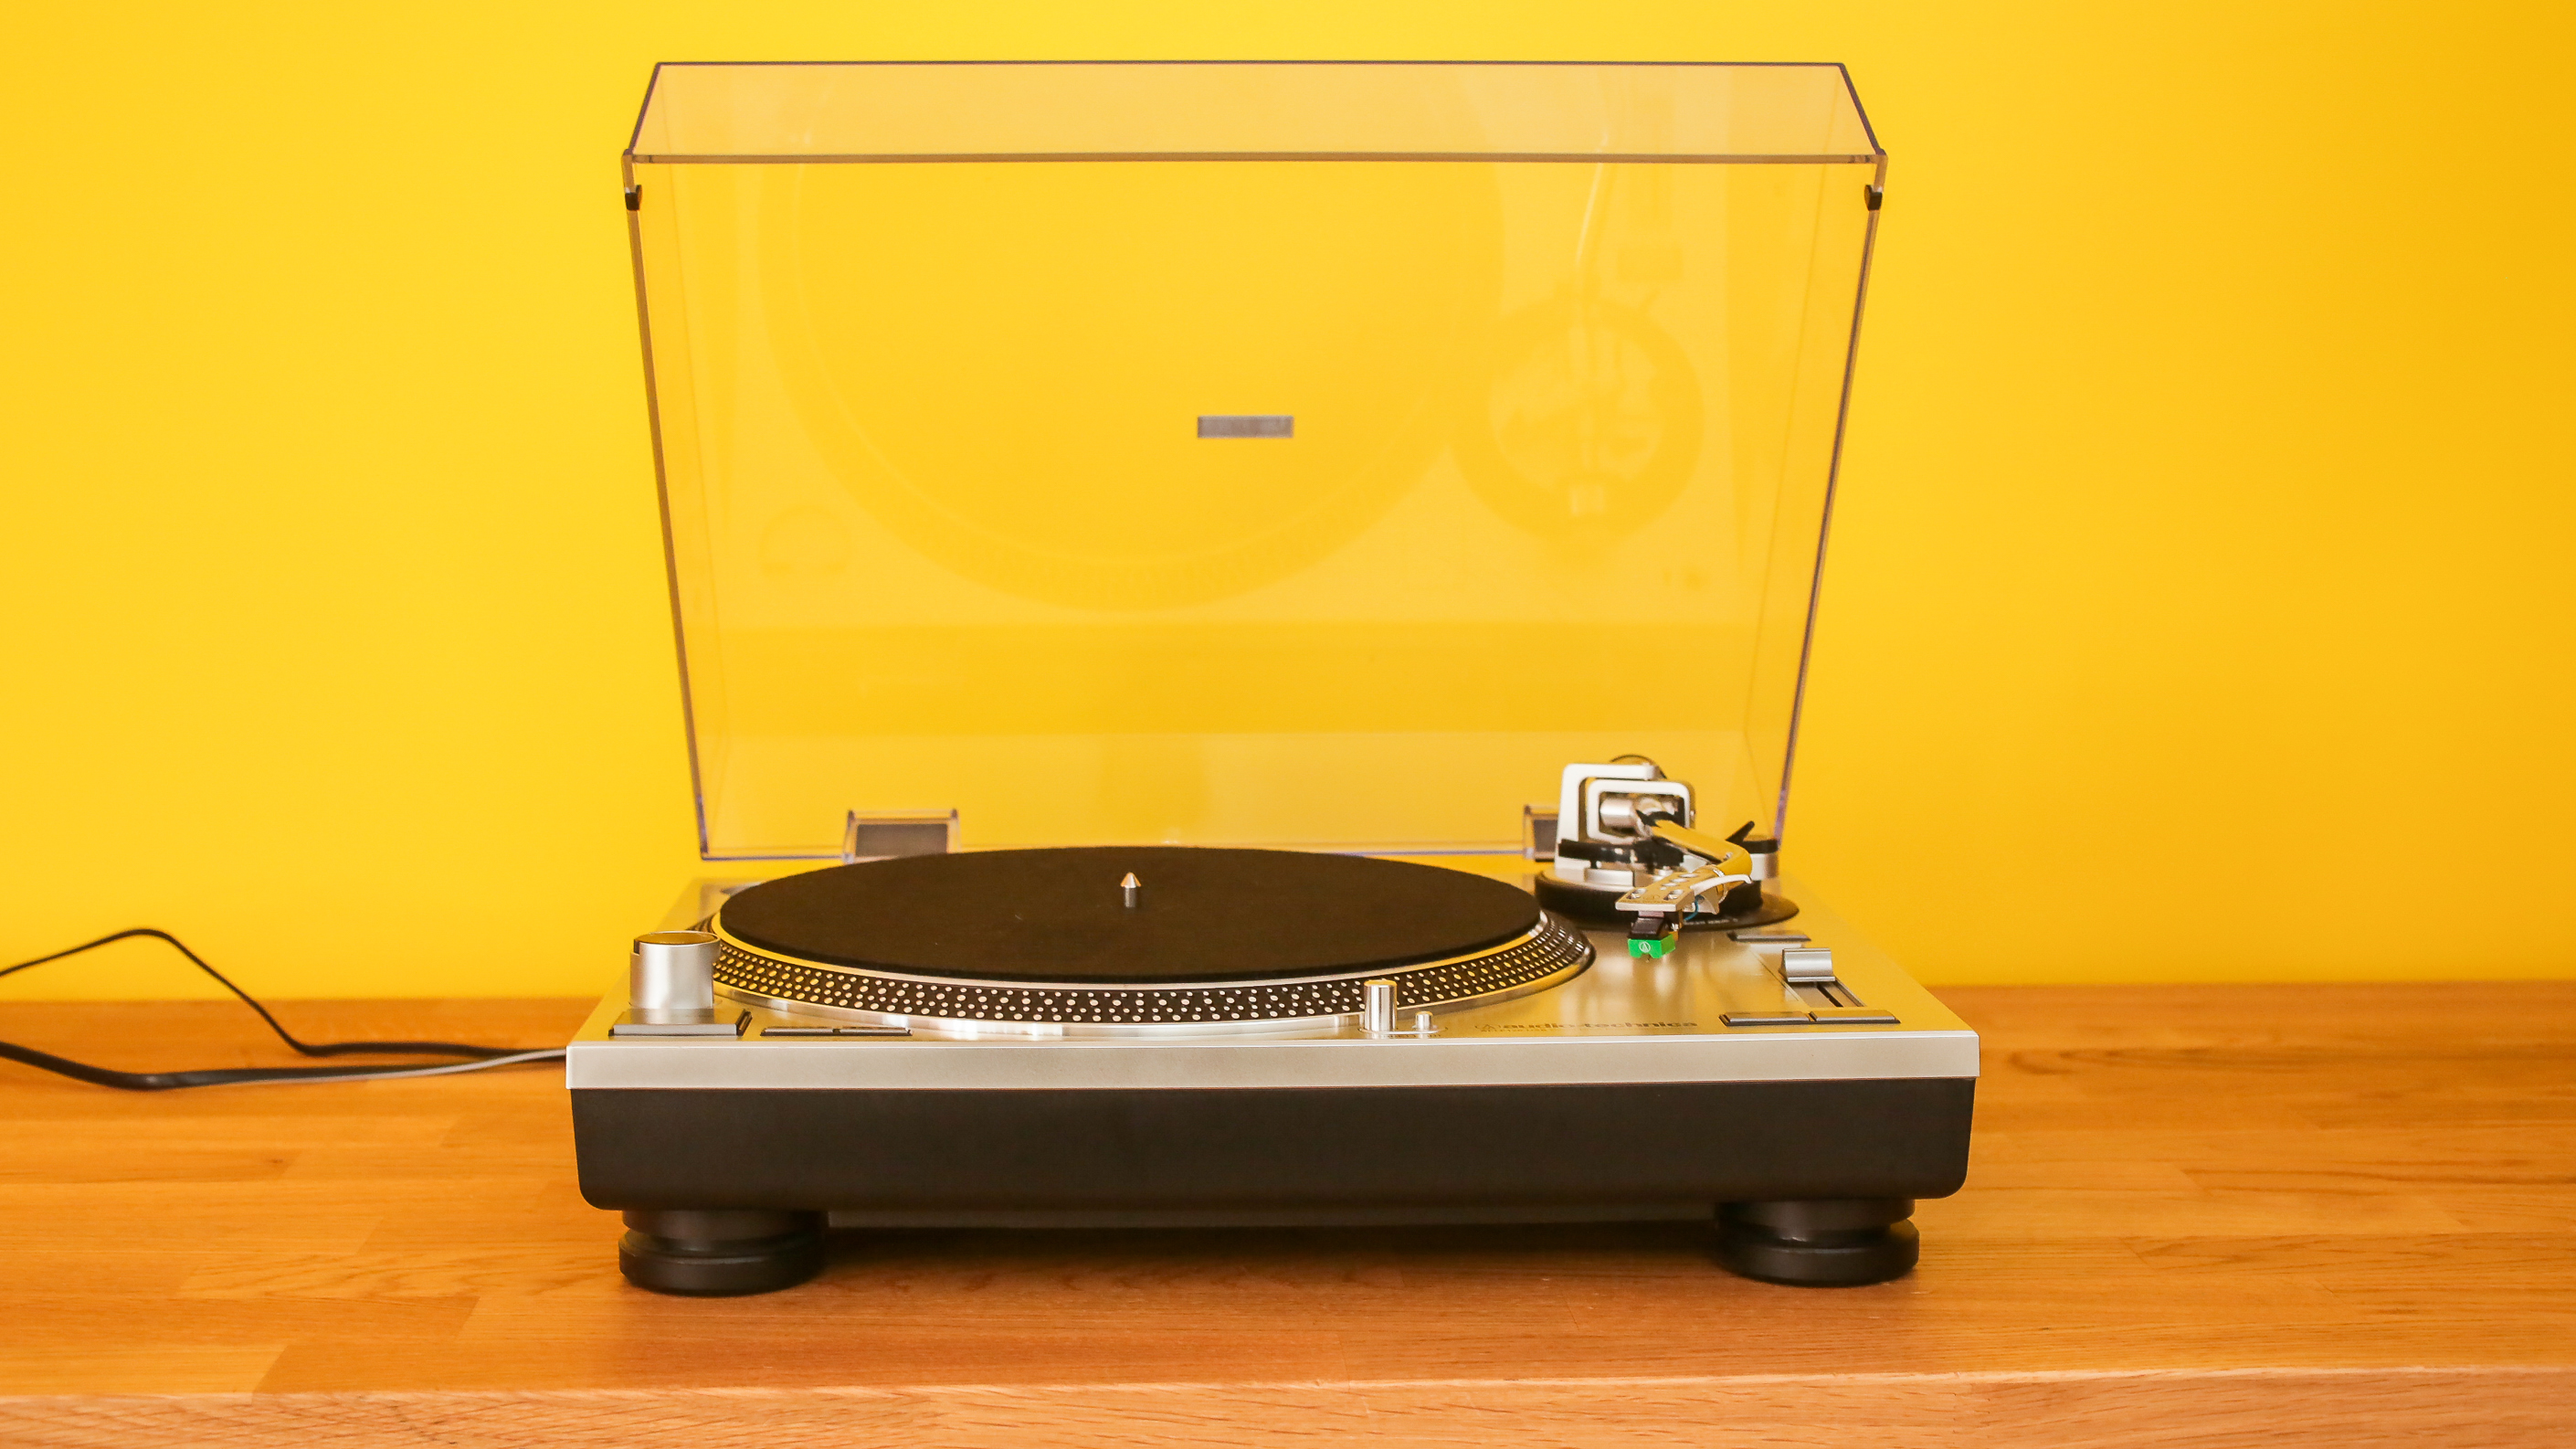 R Vinyl Audio Technica Lp120 Recently Put Together Audio